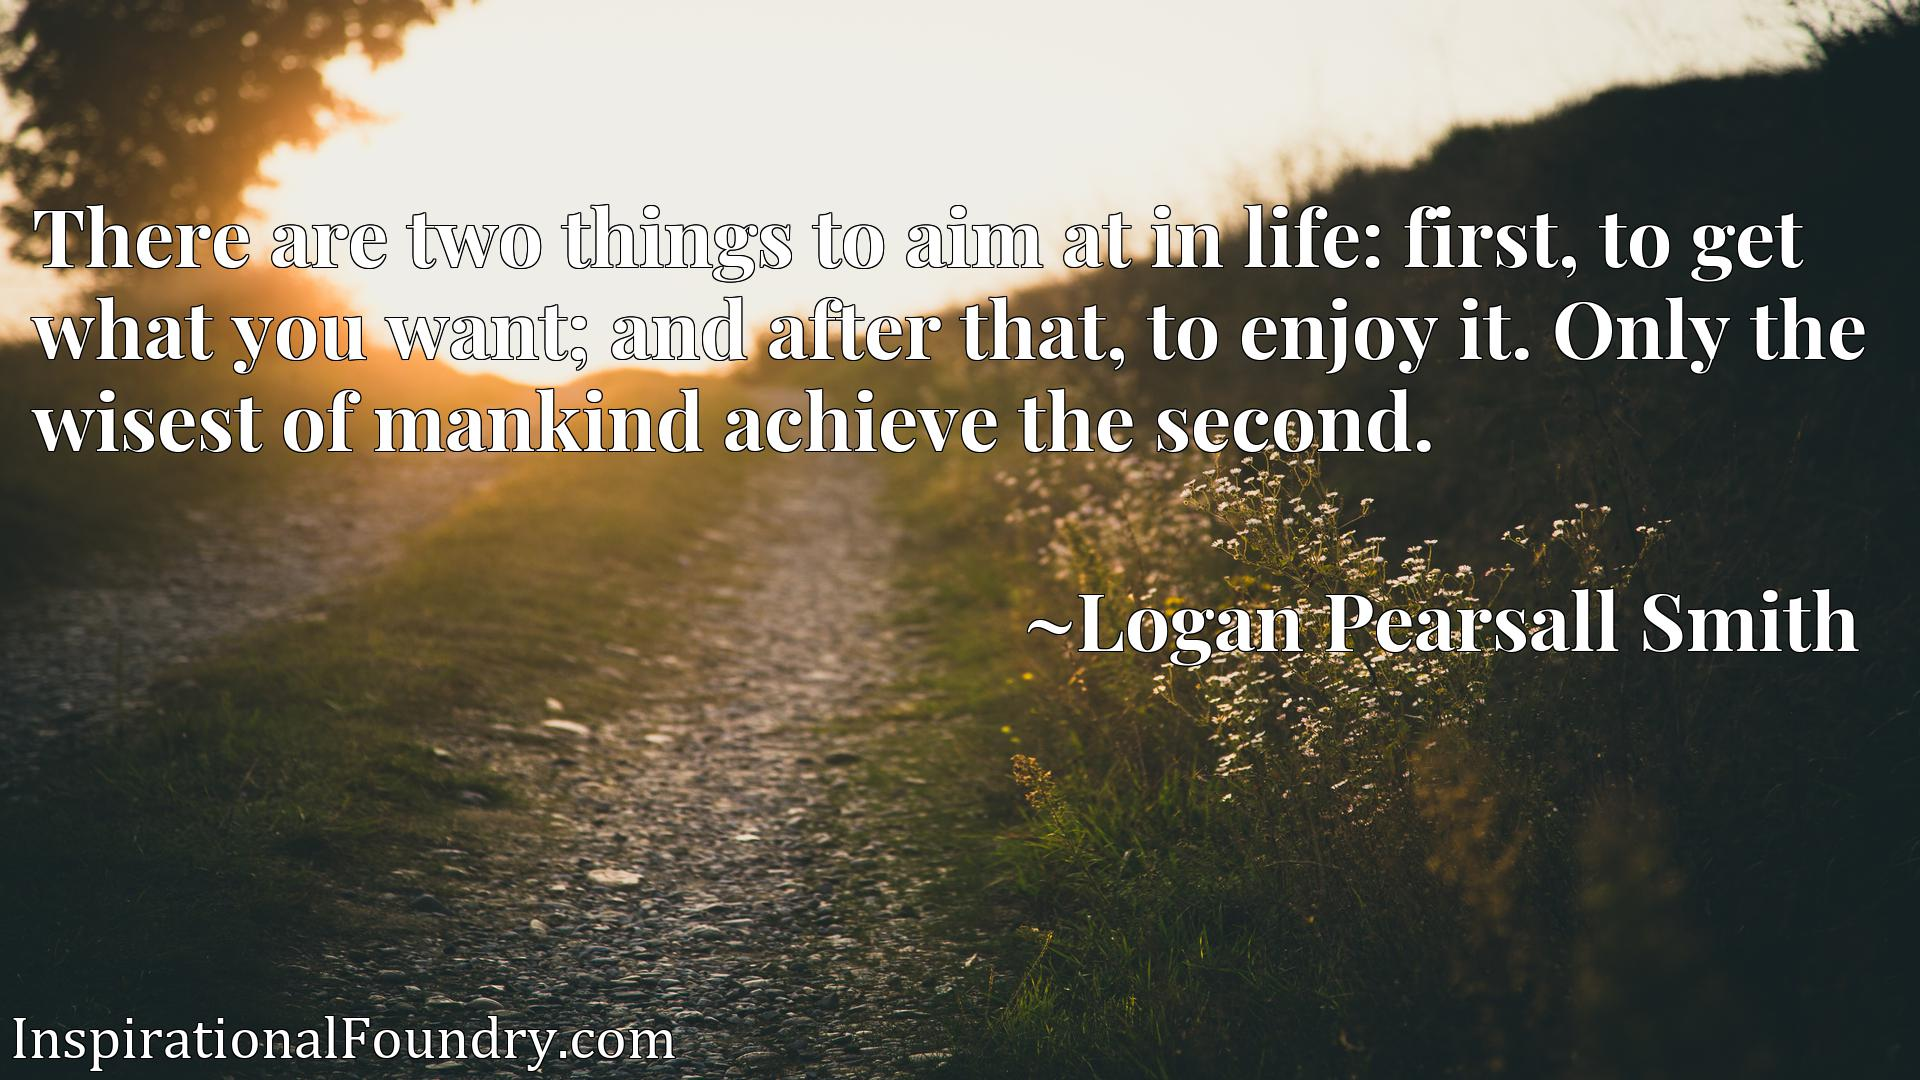 Quote Picture :There are two things to aim at in life: first, to get what you want; and after that, to enjoy it. Only the wisest of mankind achieve the second.